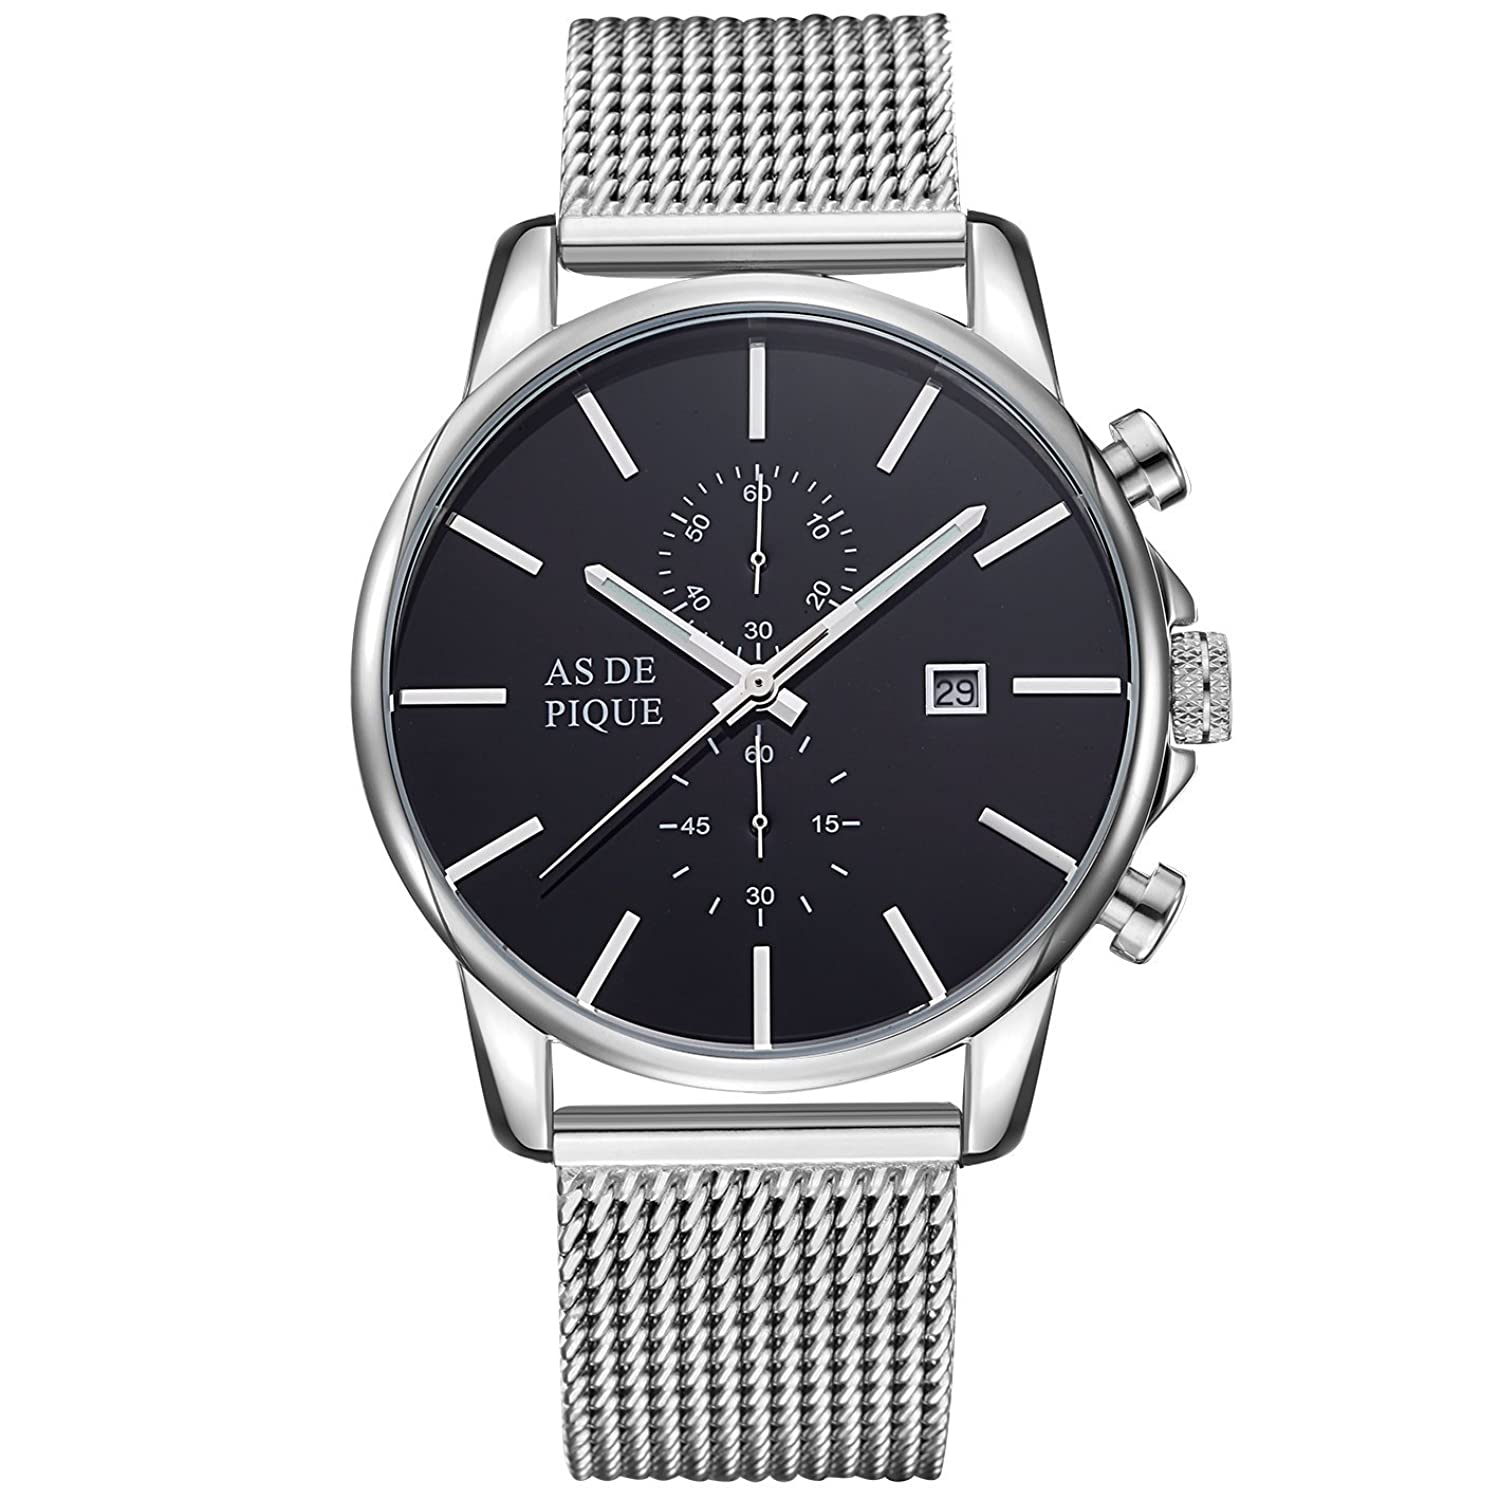 AS DE PIQUE Chrono Armbanduhr Mesh 50m wasserdicht silber